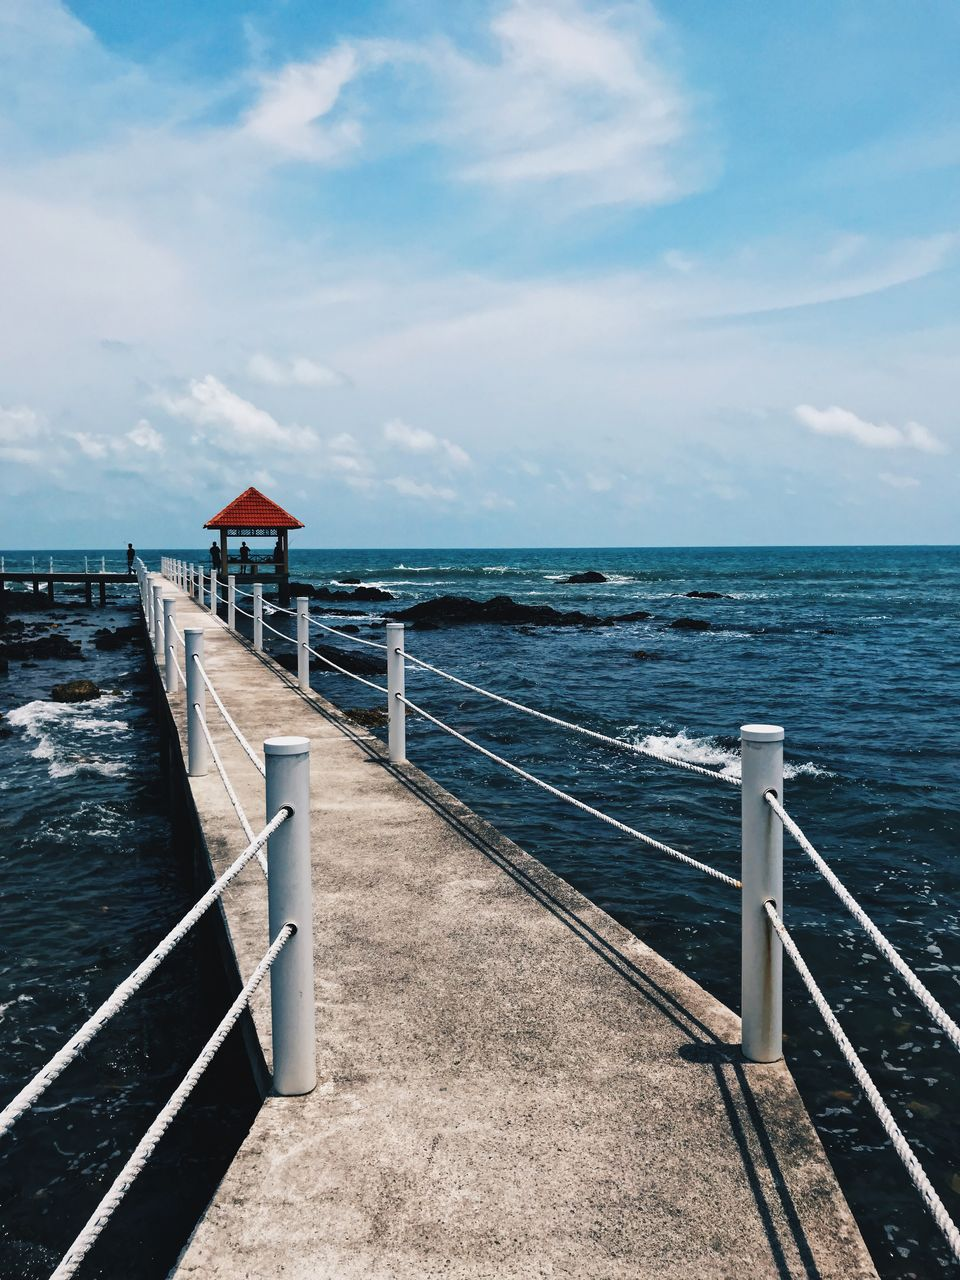 sea, water, sky, cloud - sky, railing, architecture, horizon, scenics - nature, beauty in nature, horizon over water, built structure, nature, day, tranquility, tranquil scene, no people, land, beach, pier, outdoors